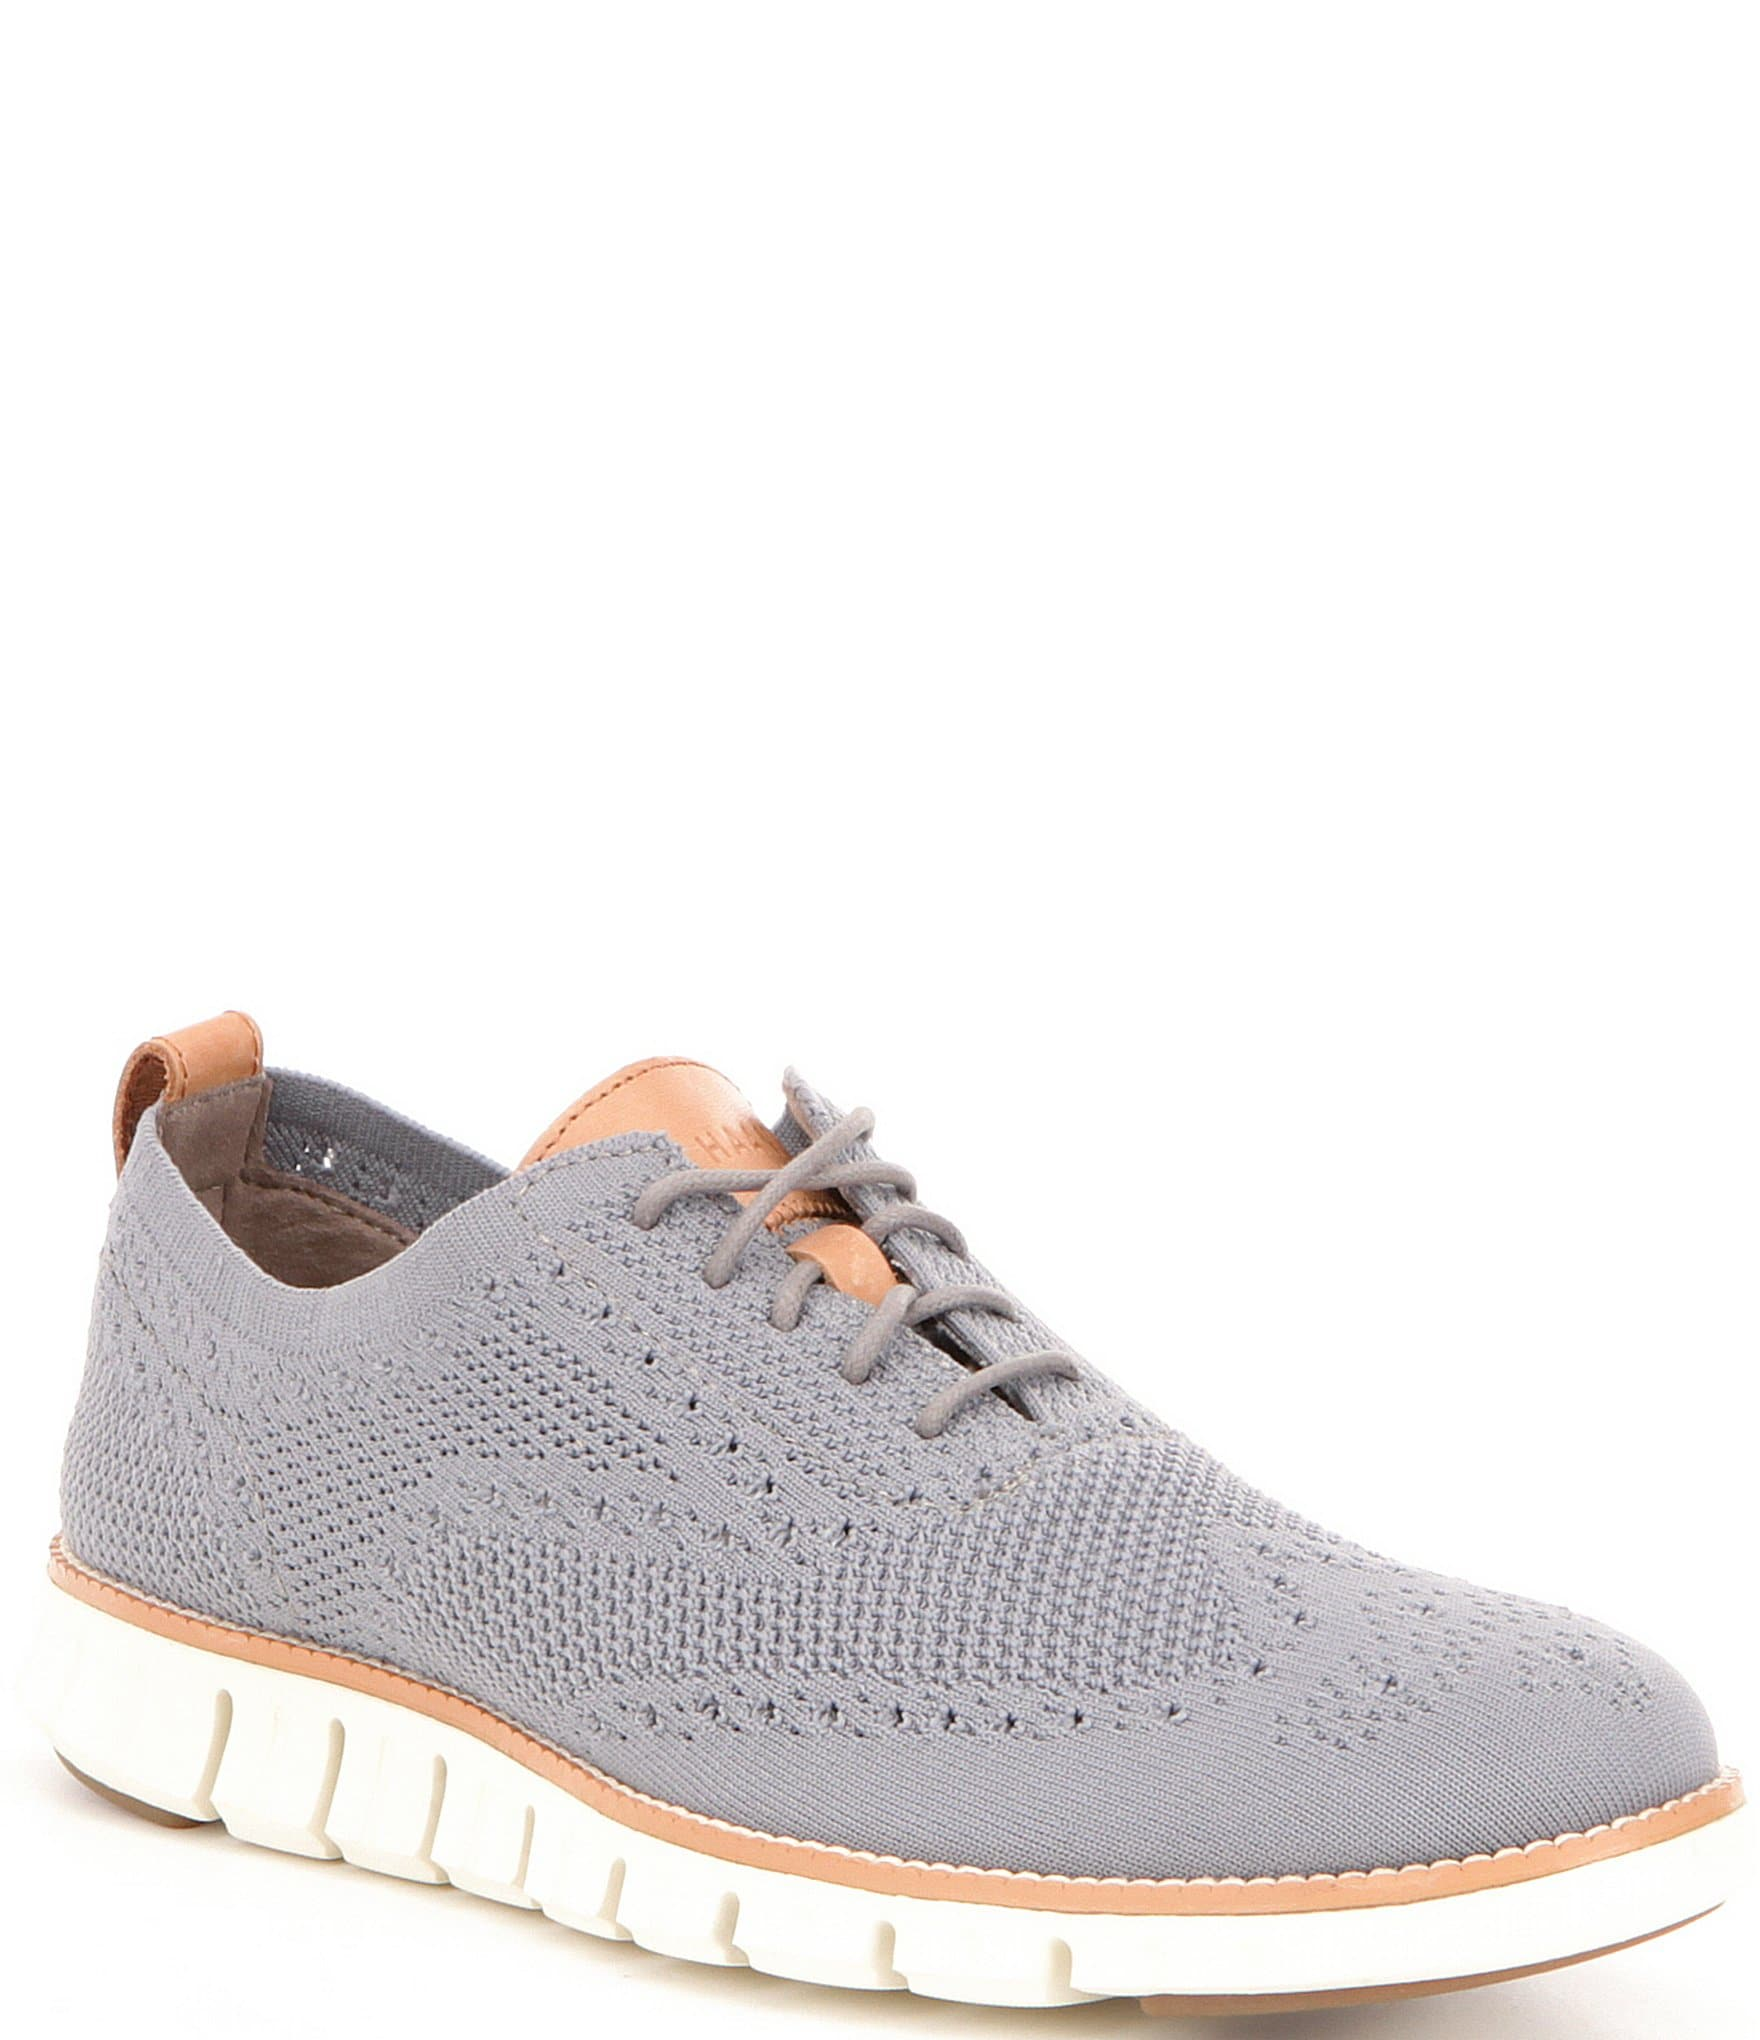 9135c0aefa97 Cole Haan Men s ZeroGrand Stitchlite Perforated Knit Lace Up Oxfords ...